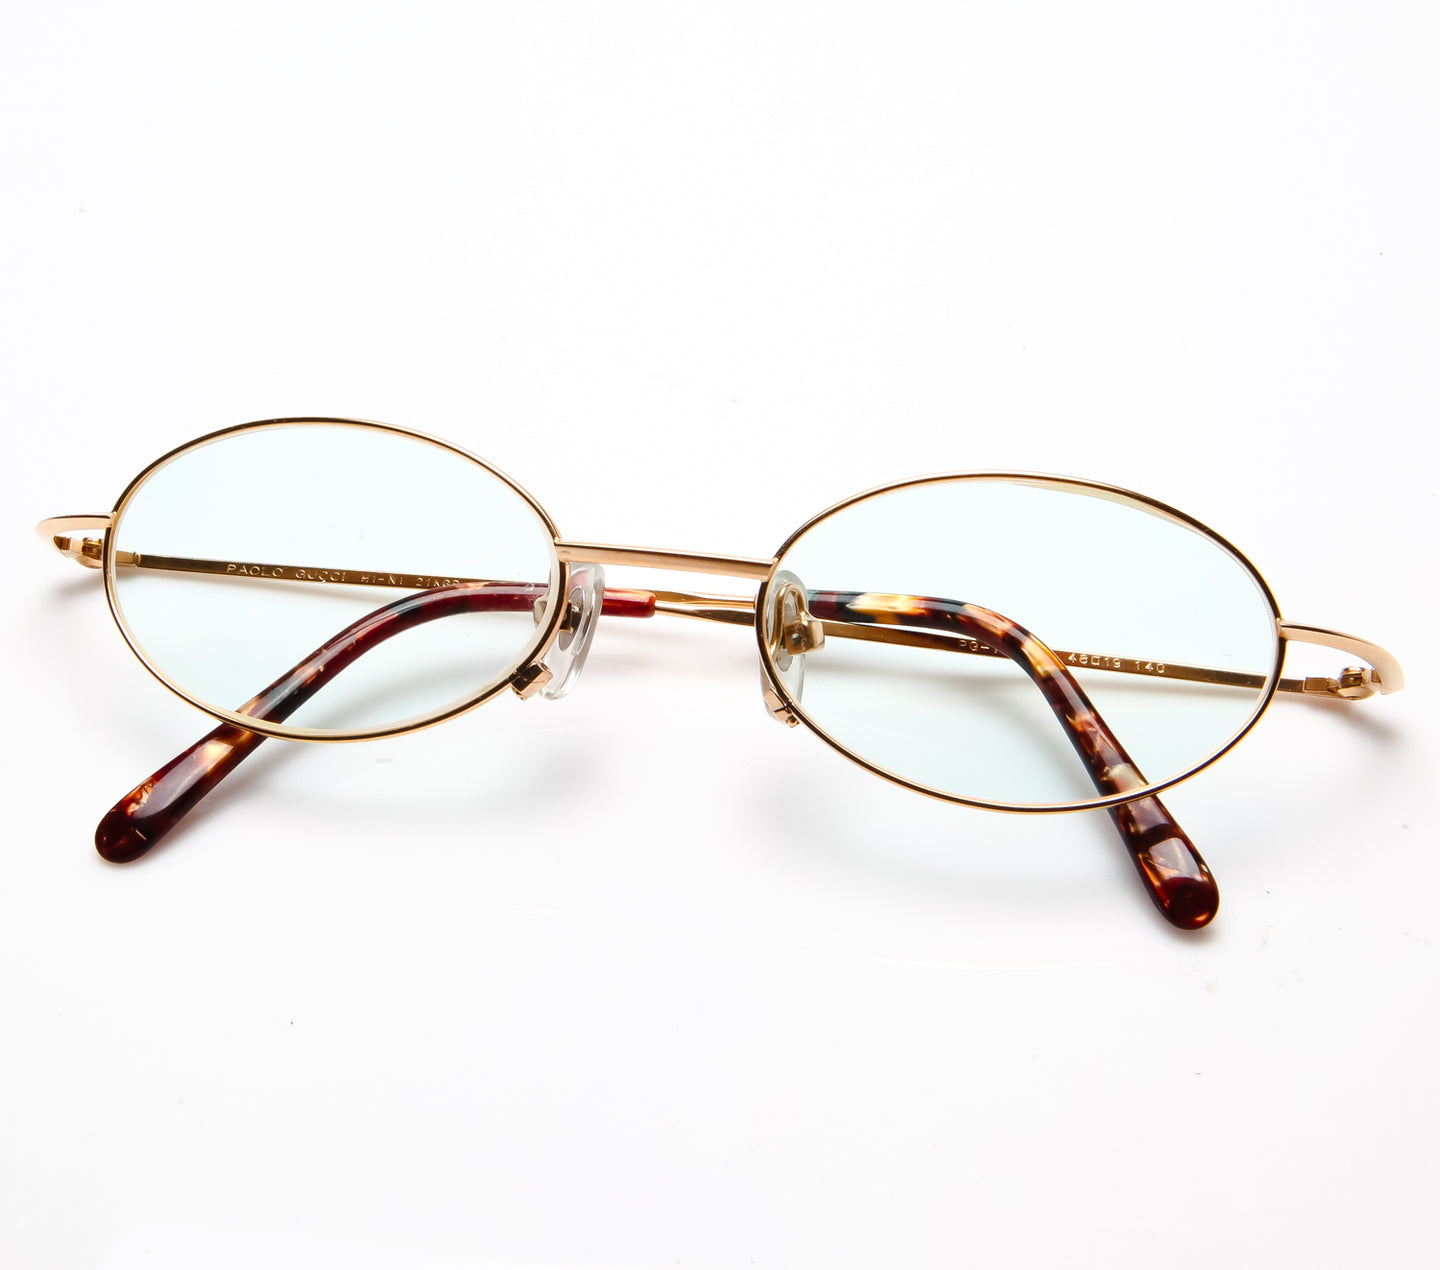 Paolo Gucci 7428R 21k Gold Plated (Flash Gold Lens), Paolo Gucci , glasses frames, eyeglasses online, eyeglass frames, mens glasses, womens glasses, buy glasses online, designer eyeglasses, vintage sunglasses, retro sunglasses, vintage glasses, sunglass, eyeglass, glasses, lens, vintage frames company, vf